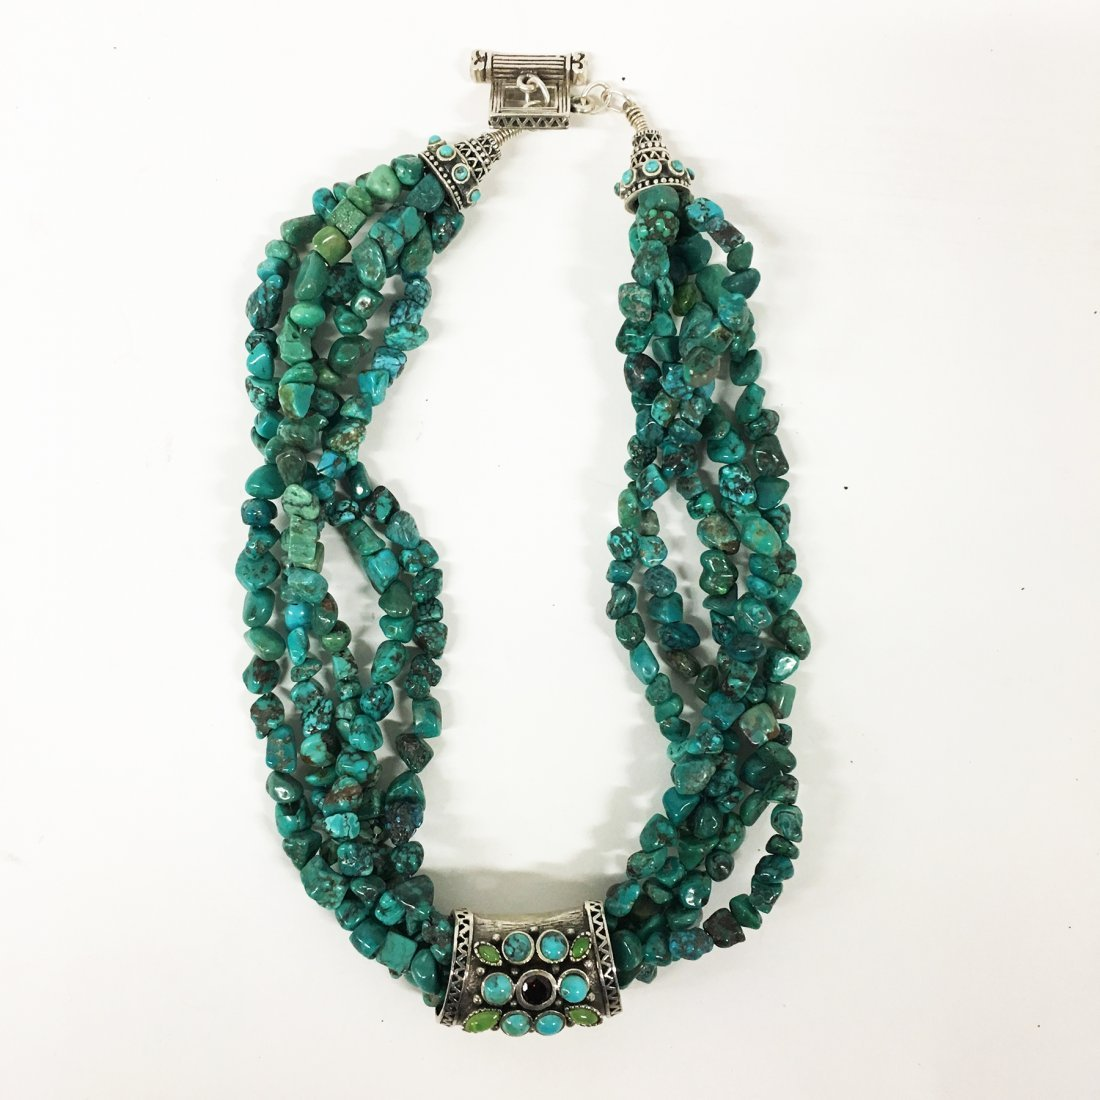 Turquoise and Sterling necklaces with gemstone accents - 2